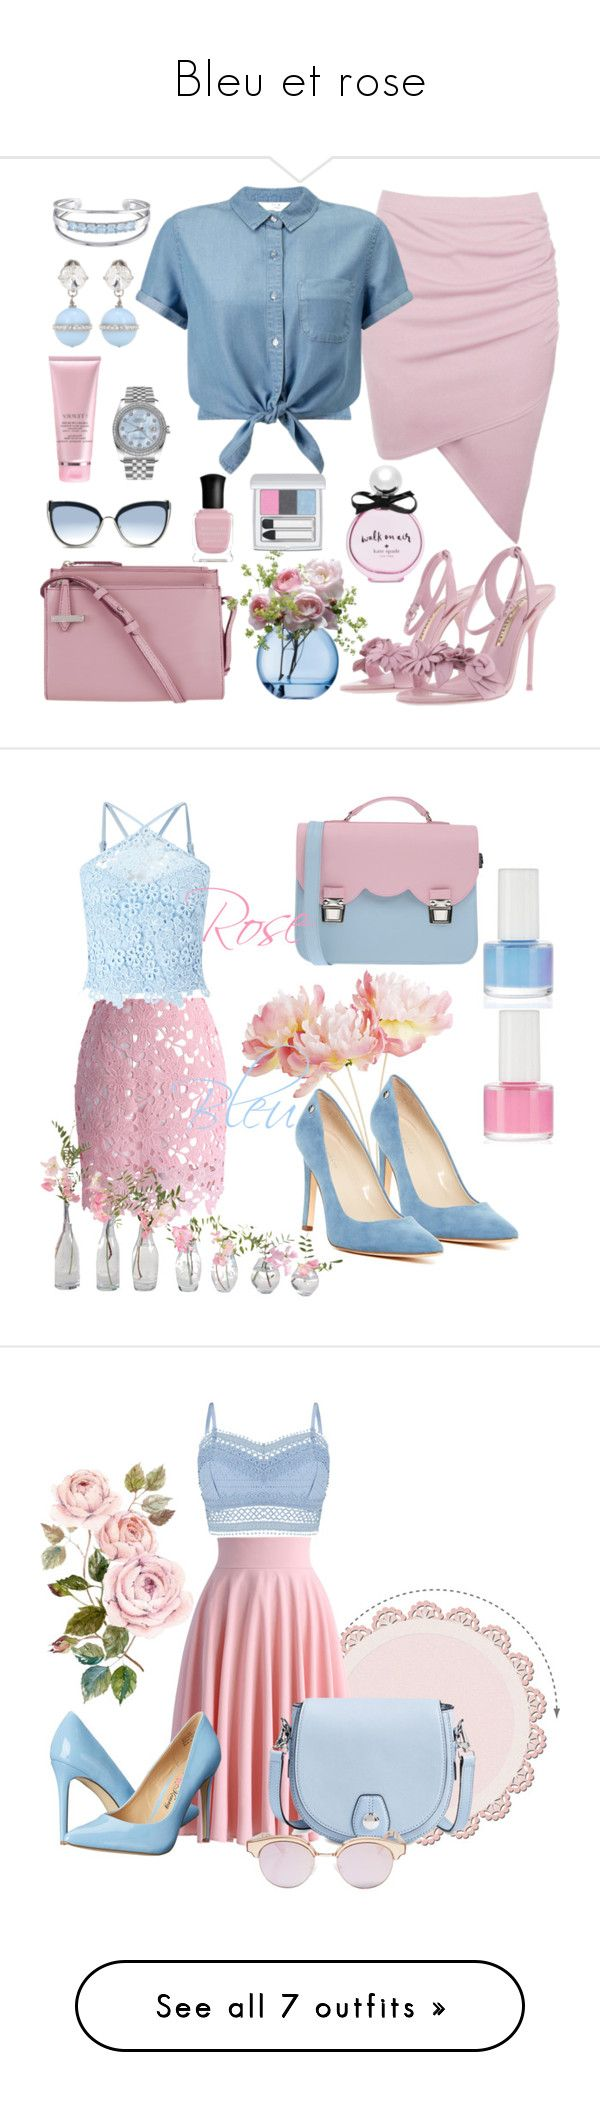 """""""Bleu et rose"""" by marthecha ❤ liked on Polyvore featuring Lodis, Boohoo, Karl Lagerfeld, Miu Miu, Rolex, By Terry, Kate Spade, Sophia Webster, Catherine Malandrino and LSA International"""